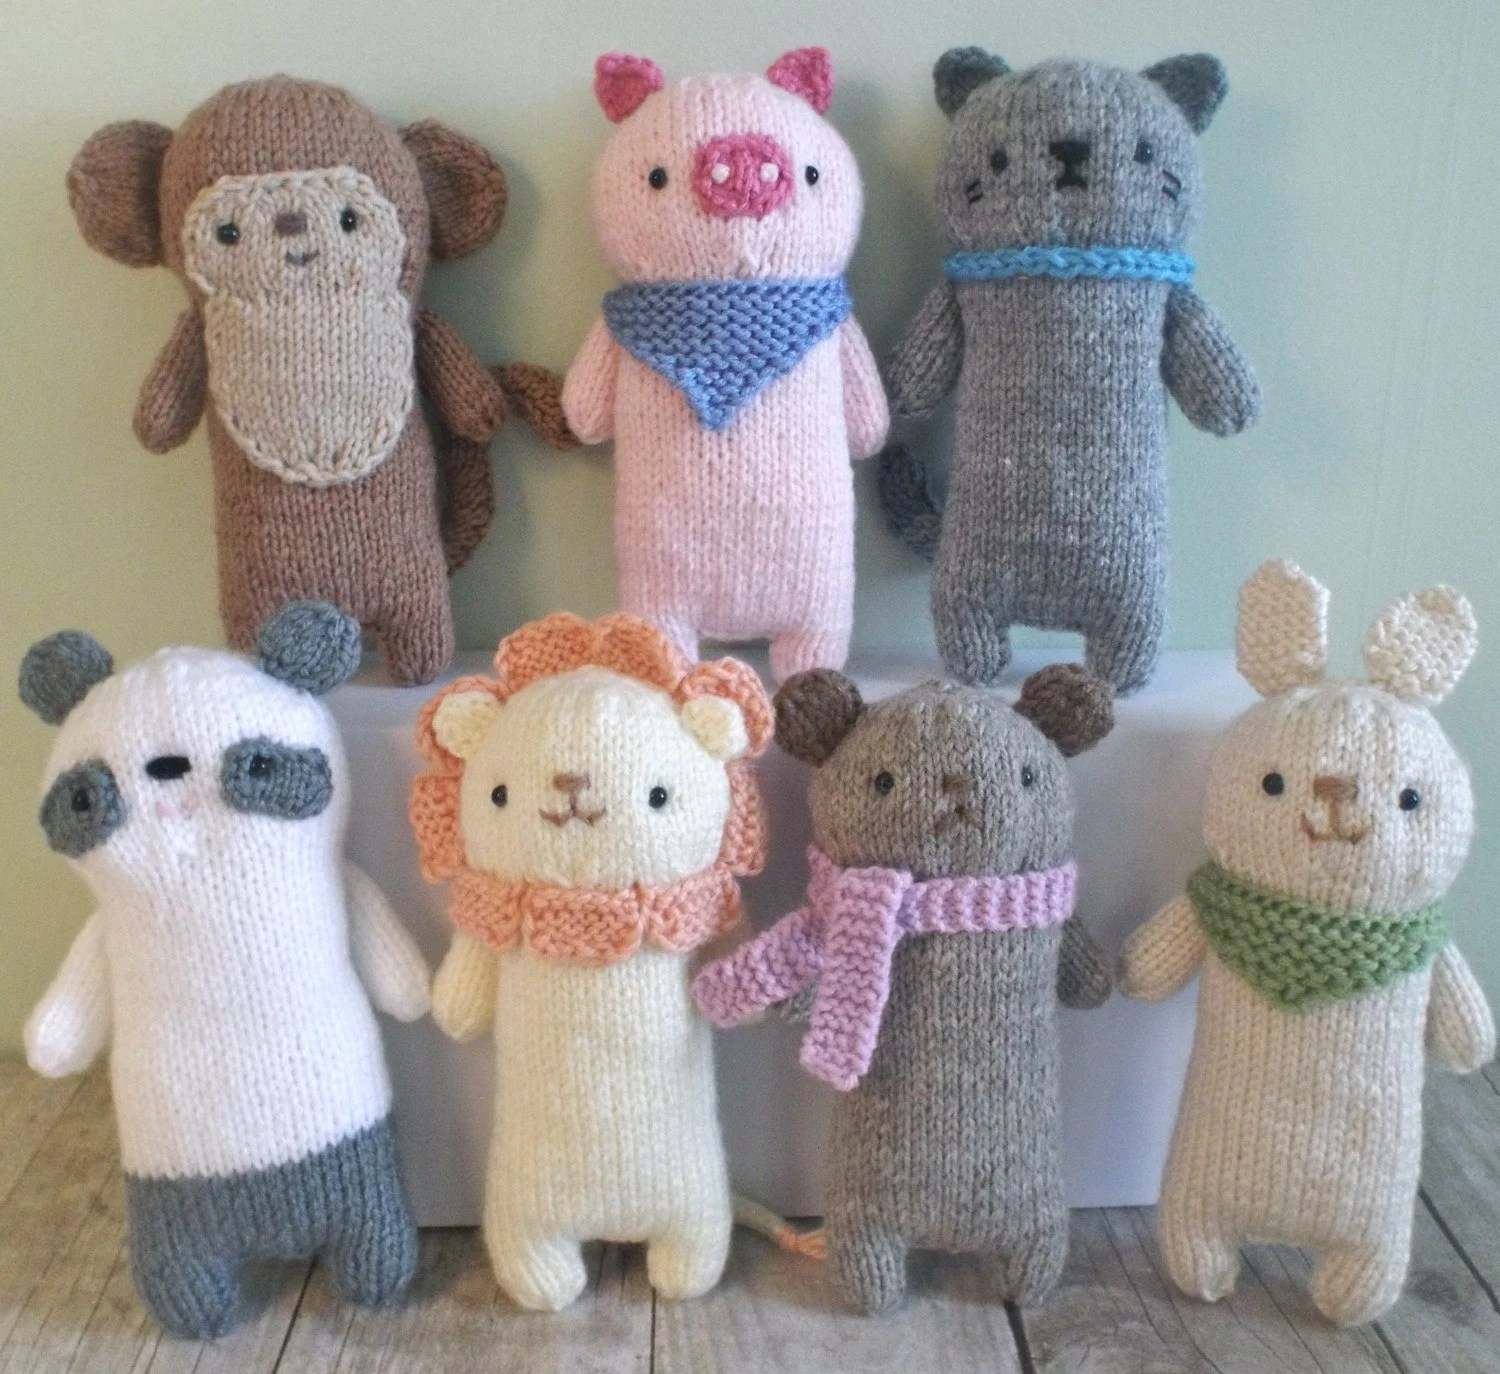 Amigurumi Knit Baby Animals Pattern Set Digital Download From Amygaines On Etsy Studio